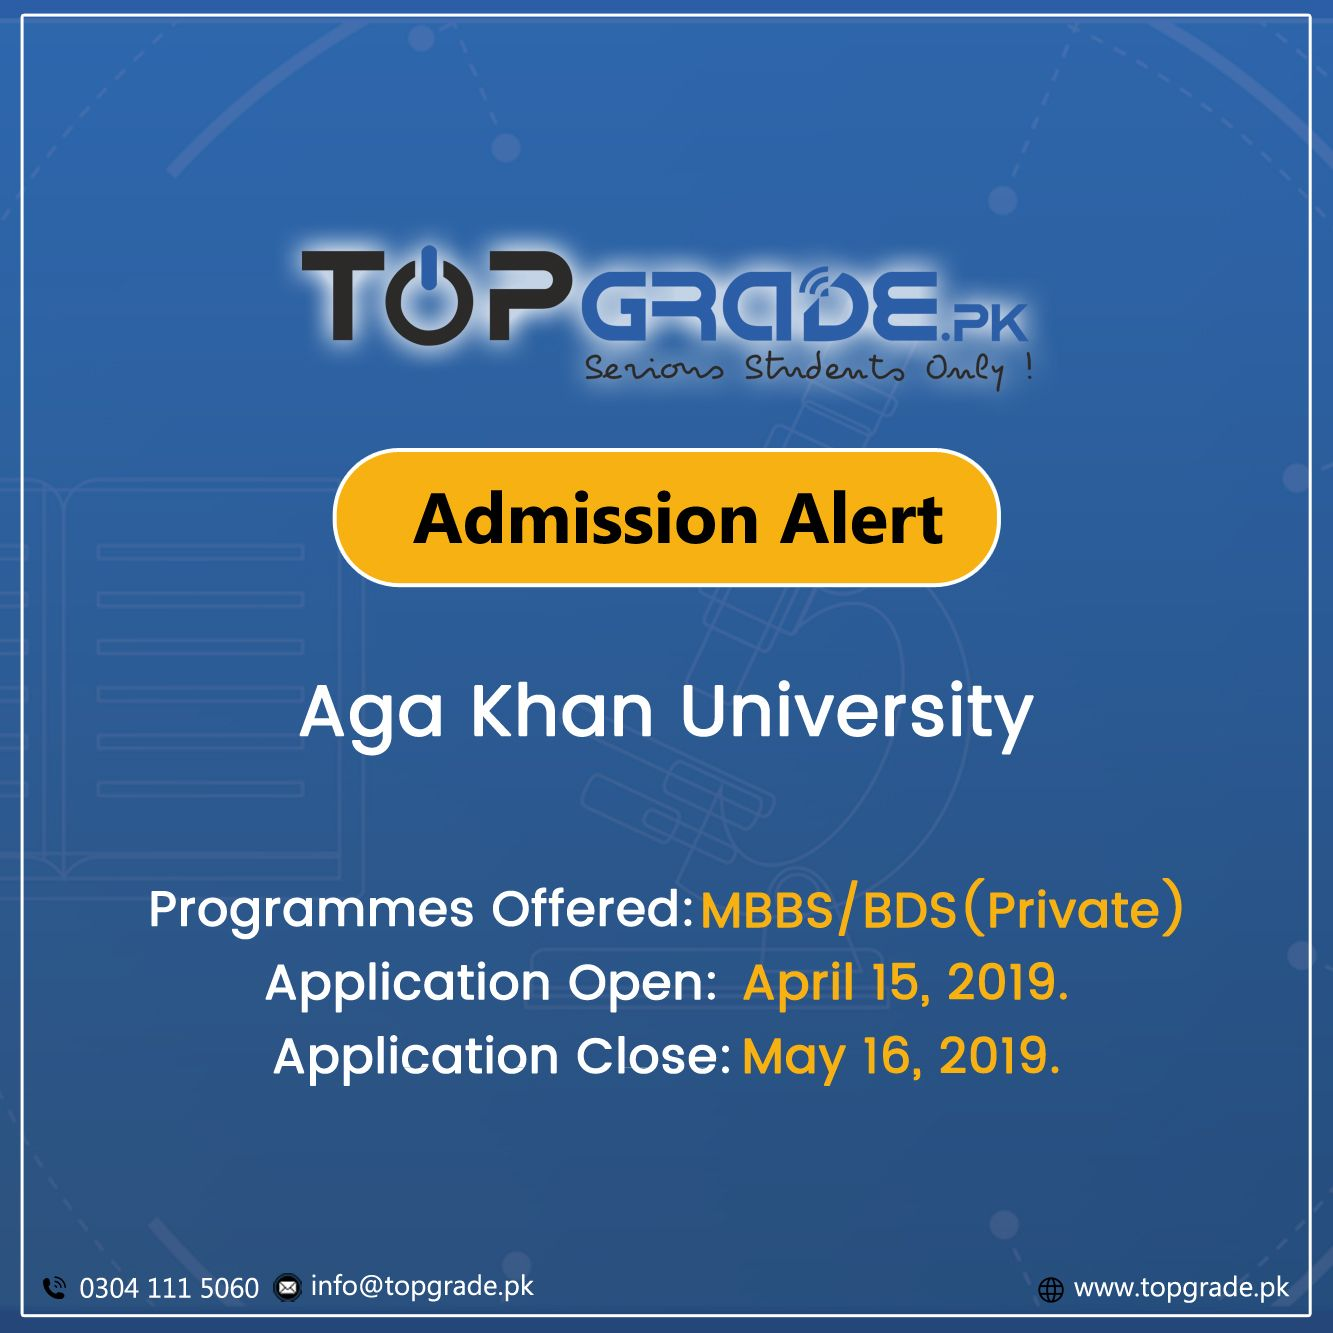 ee03d98791ddeb311b74fd3707027503 - How To Get Admission In Aga Khan Medical College